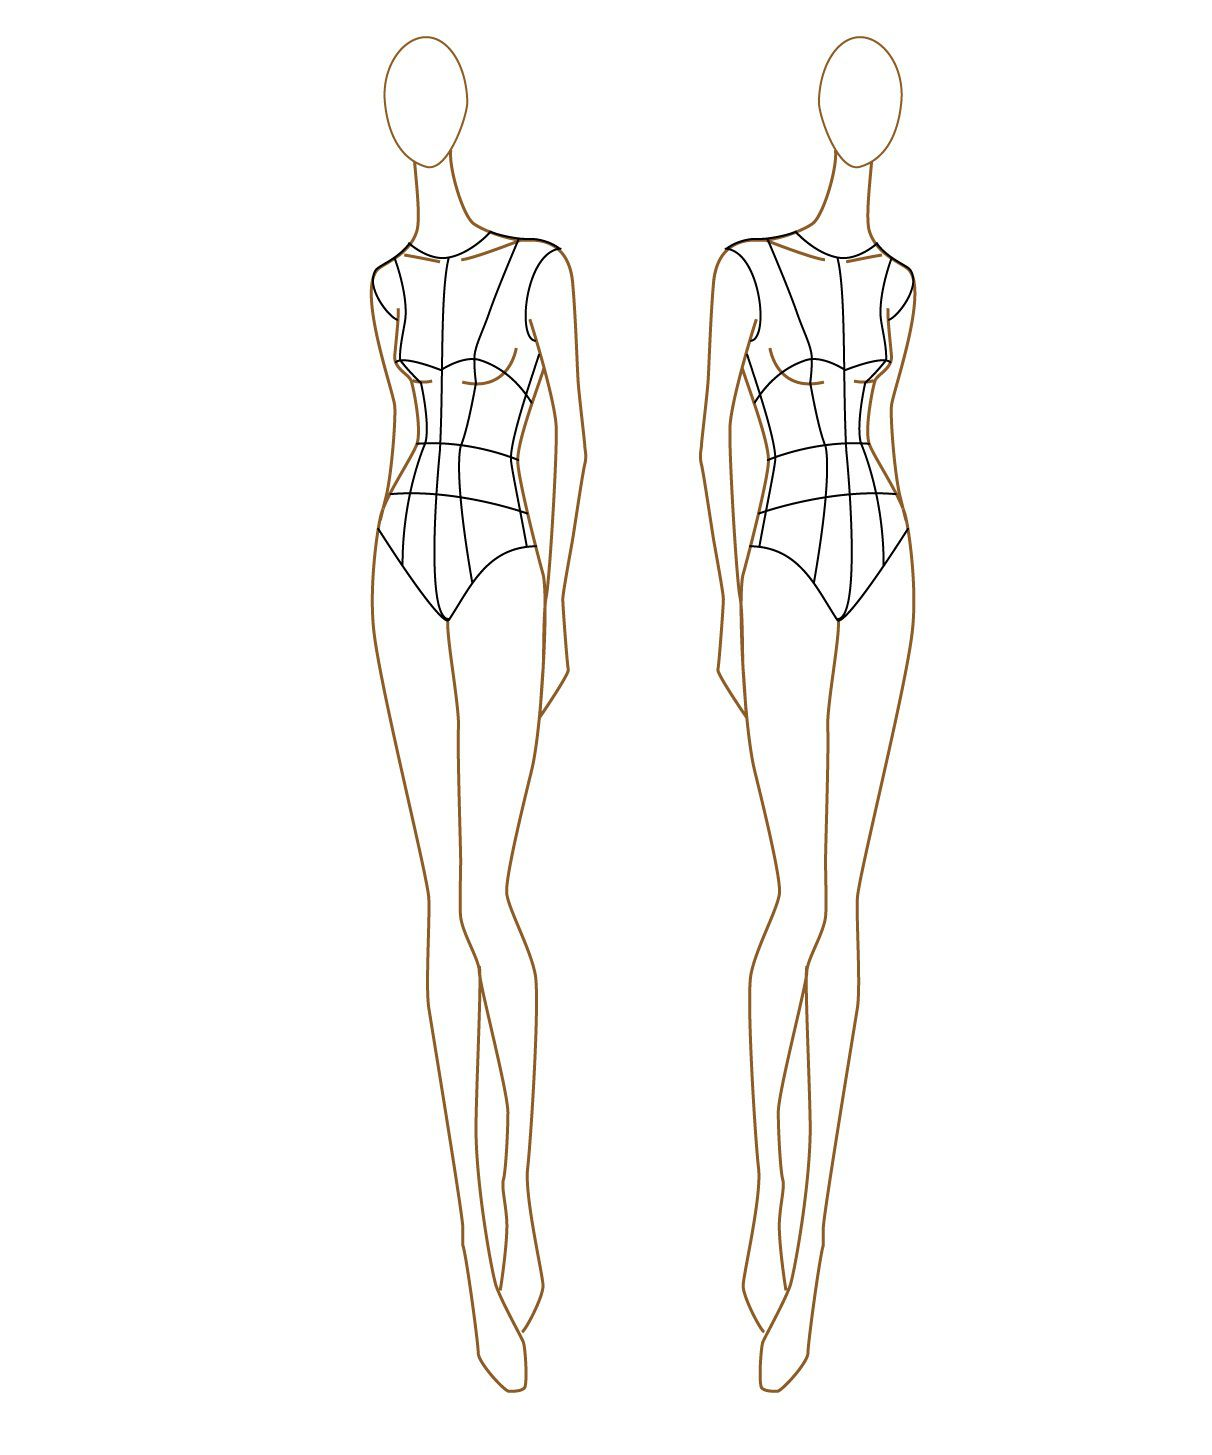 009 Striking Body Template For Fashion Design Example  Female Male HumanFull